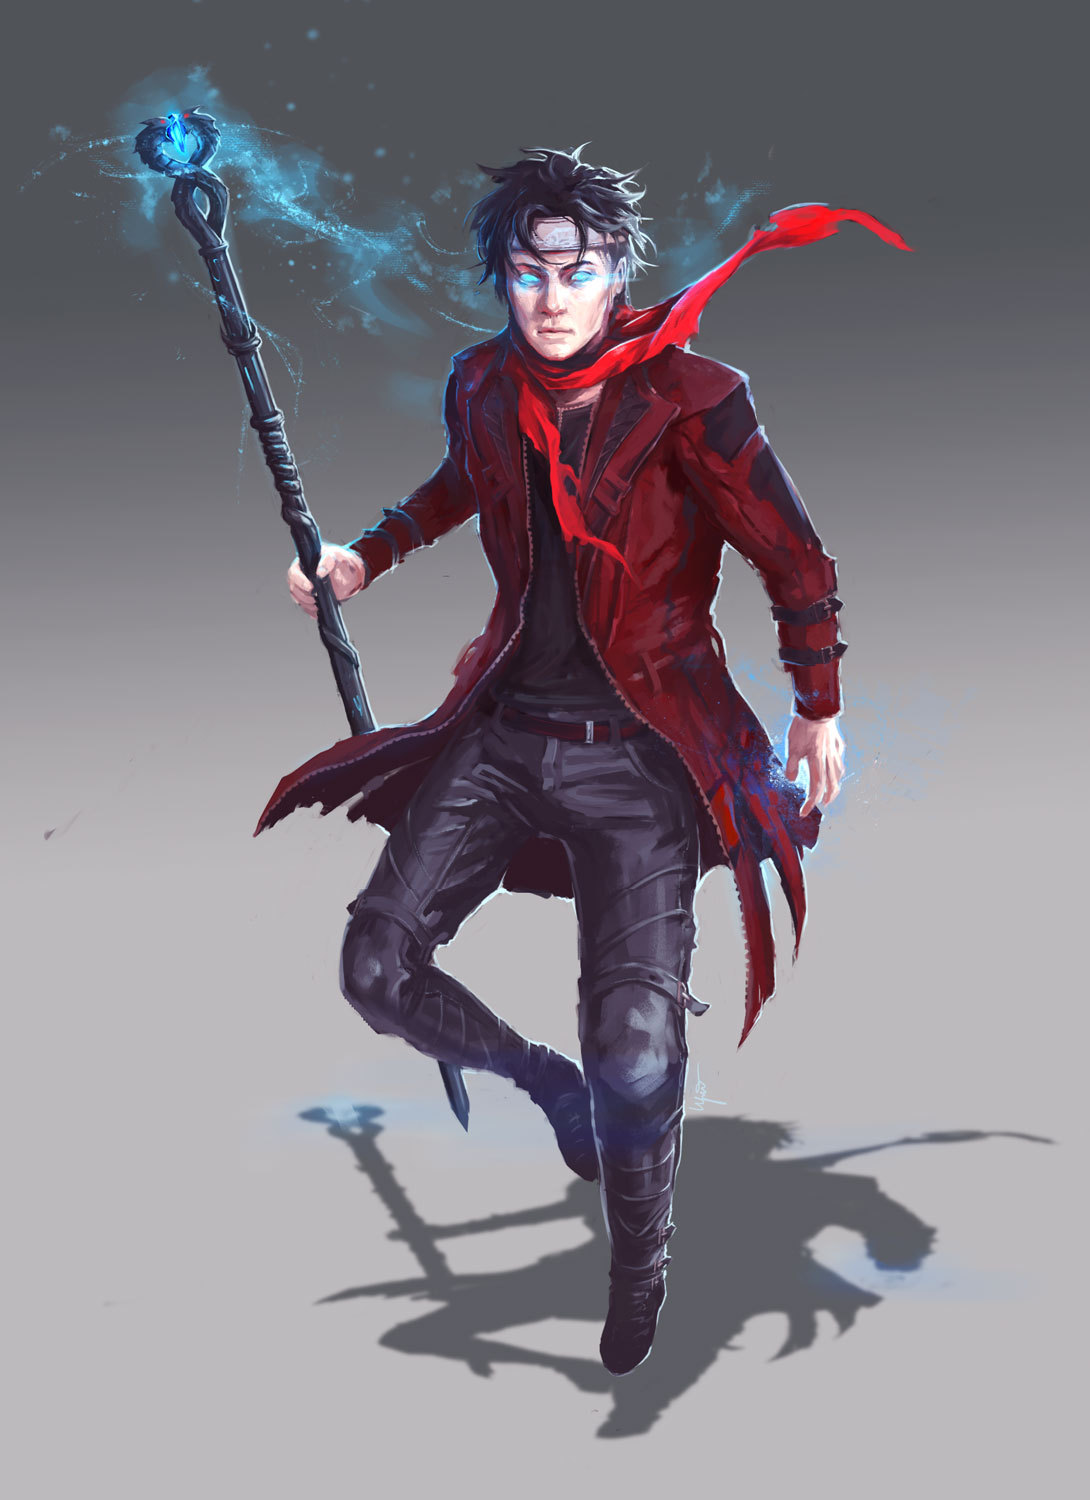 Old Lady Wallpaper Cute Black Phoenix Male Version Of Scarlet Witch S Costume